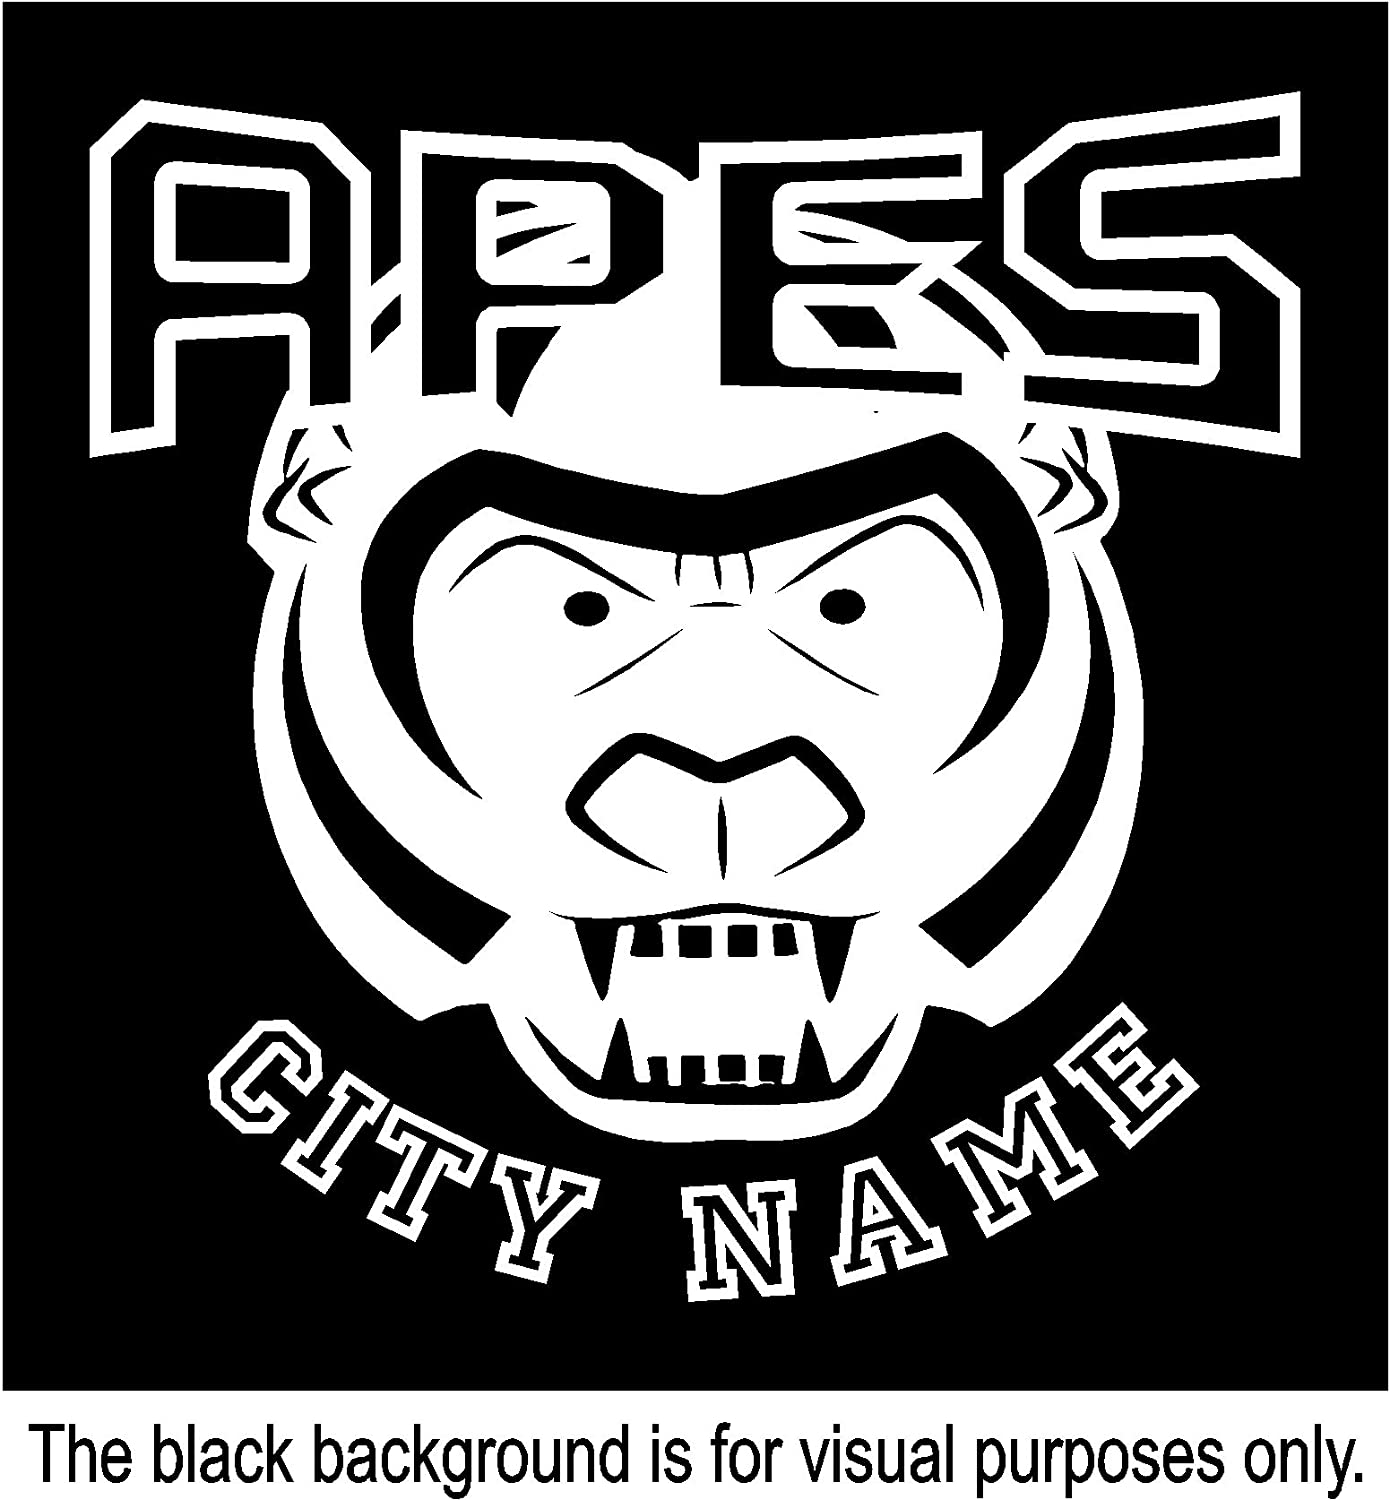 Apes Sport Team Mascot City Name Custom Customize Decal Sticker Vinyl Car Window Tumblers Wall Laptops Cellphones Phones Tablets Ipads Helmets Motorcycles V and T Gifts